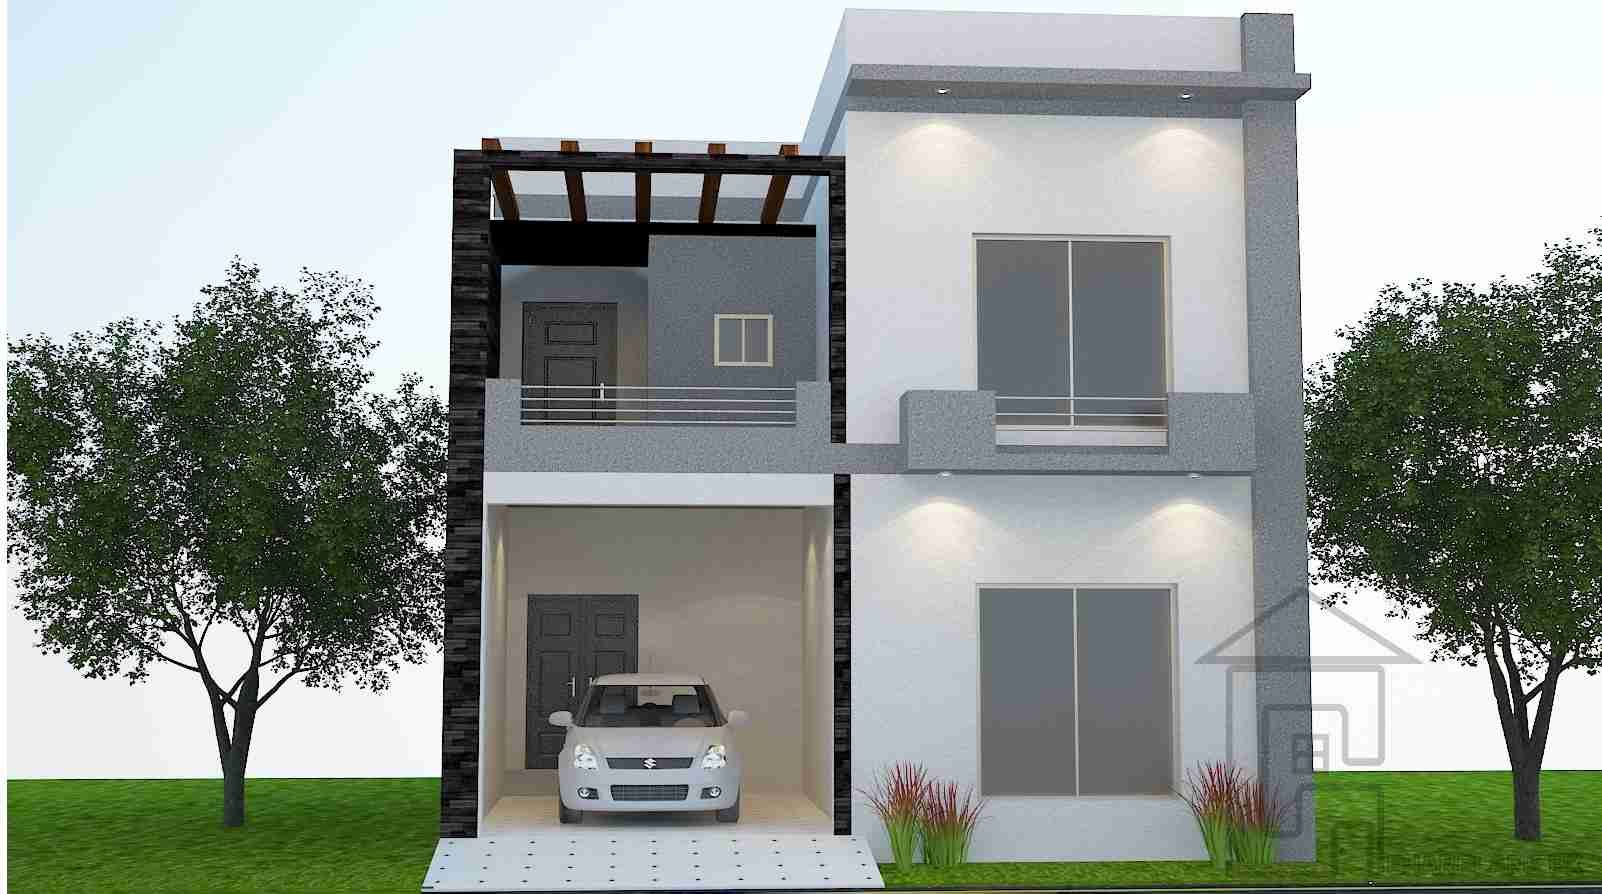 Front Design Of 5 Marla House Part - 44: This Is A Standard 5 Marla House Front Design With The Complete Layout Plan  As It